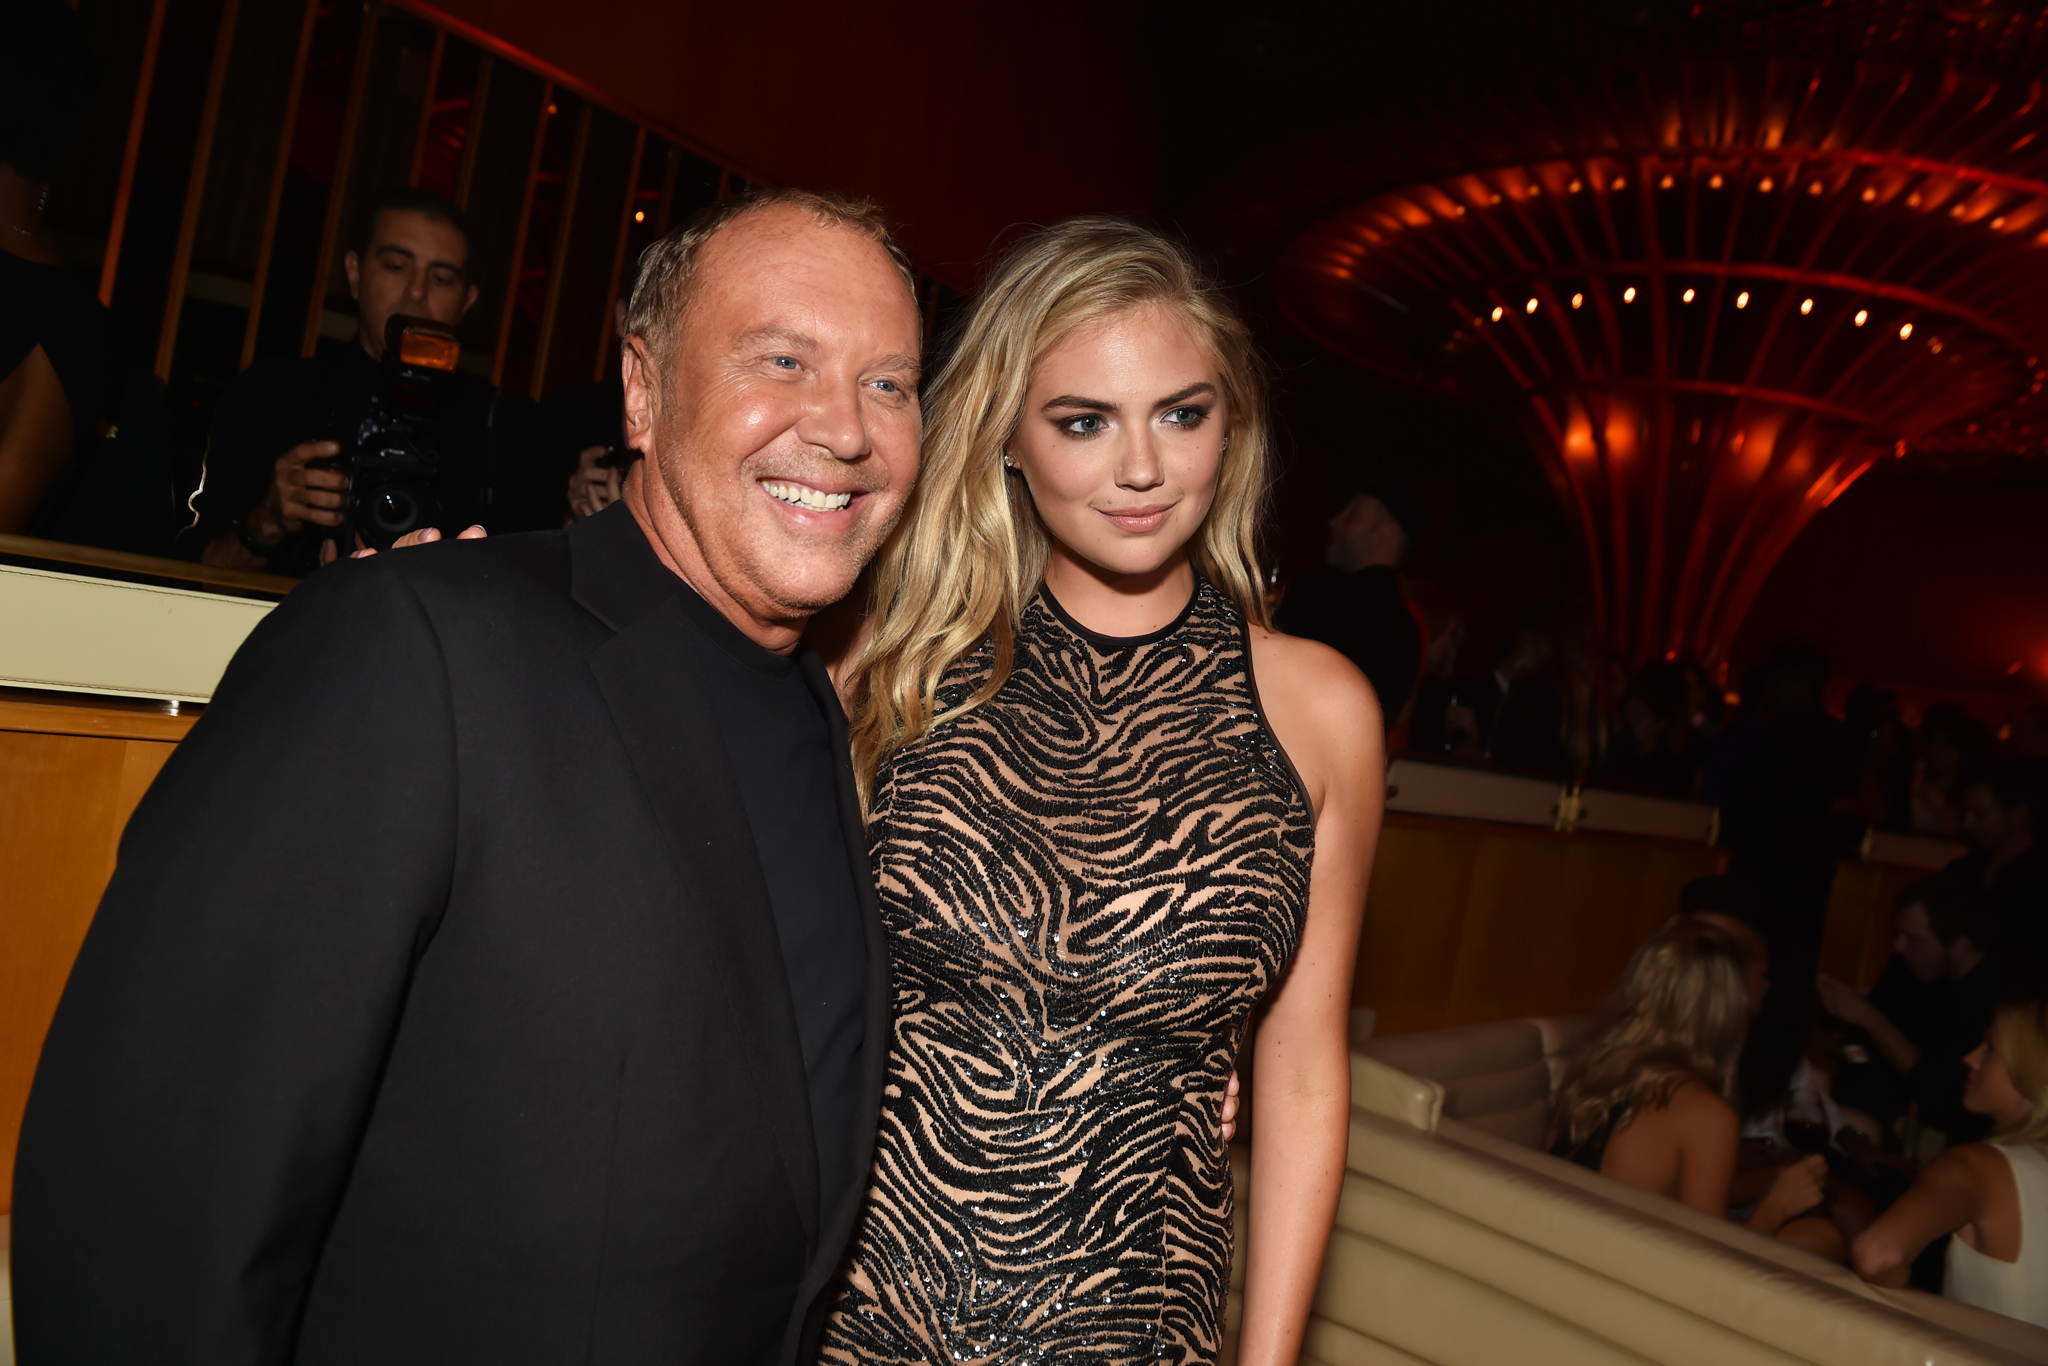 Michael Kors and Kate Upton